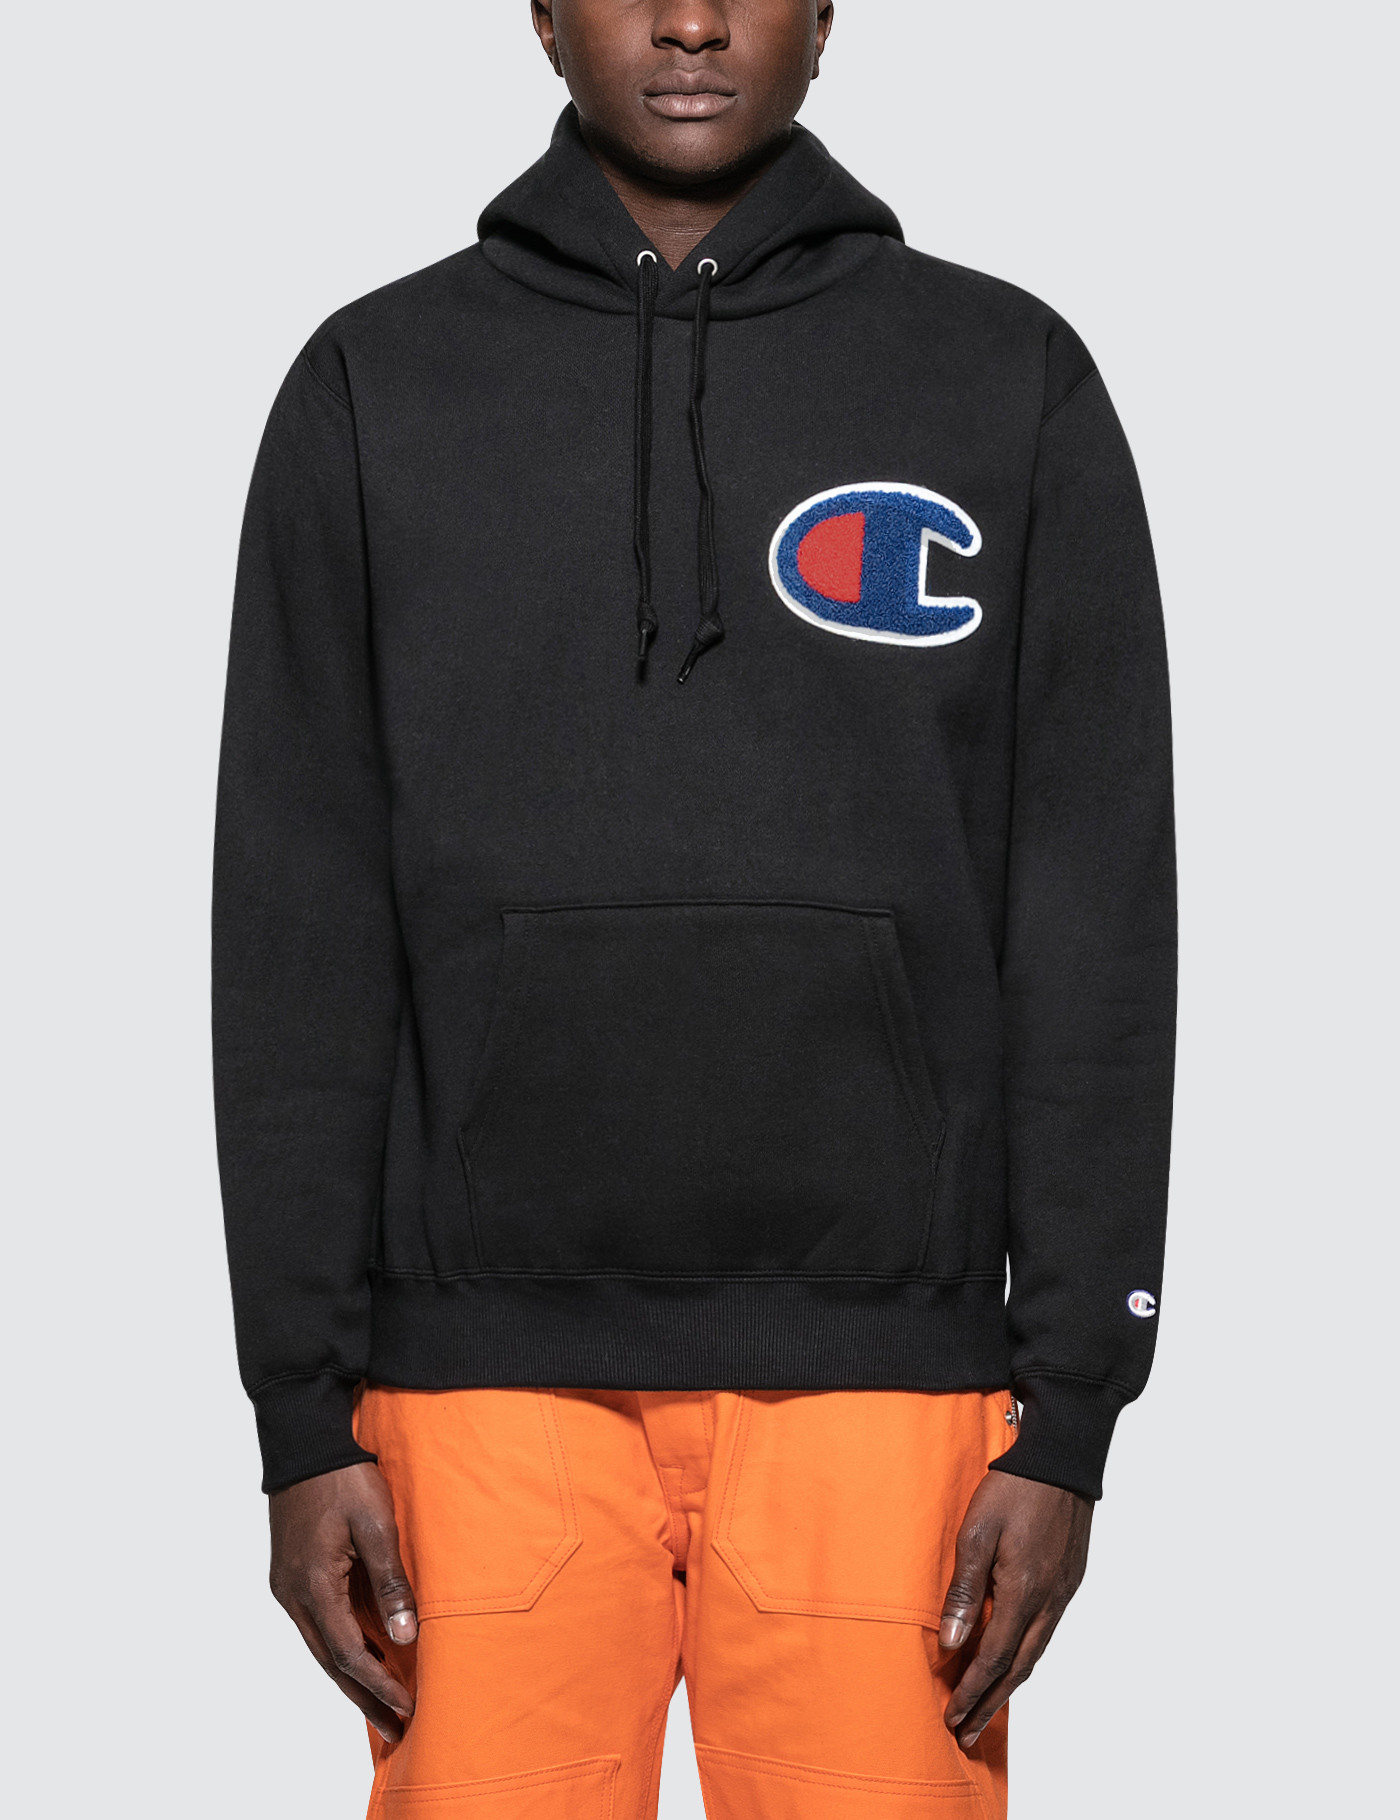 39f9019b8db26 Buy Original Champion JP Patched C Logo Hoodie at Indonesia